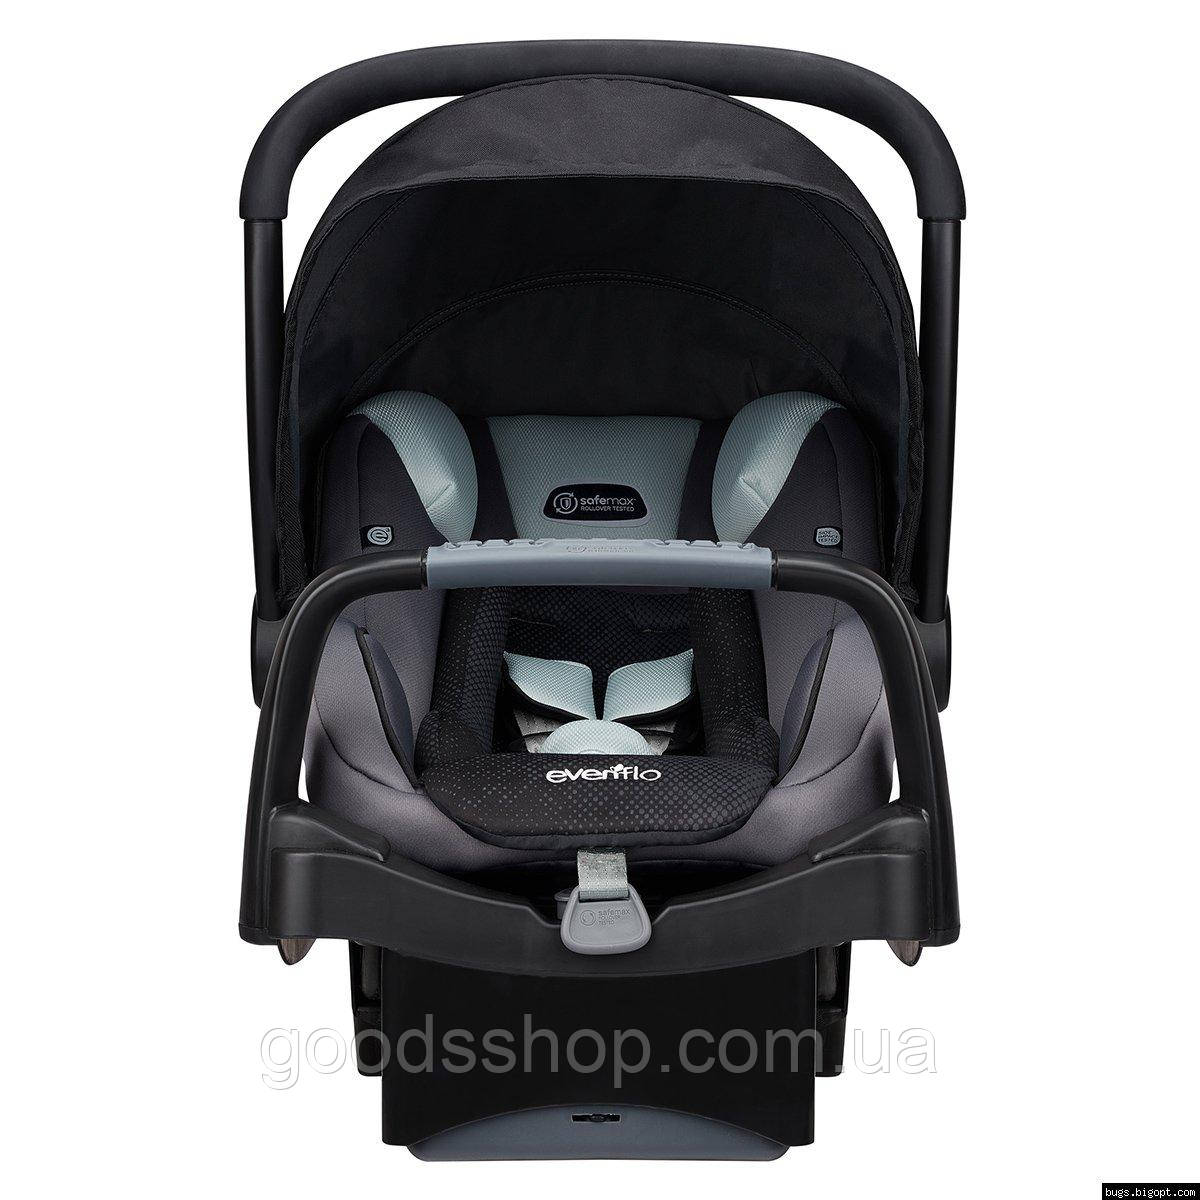 Evenflo® автокресло SafeMax Infant Car Seat цвет - Shiloh (группа от 1,8 до 15,8 кг)